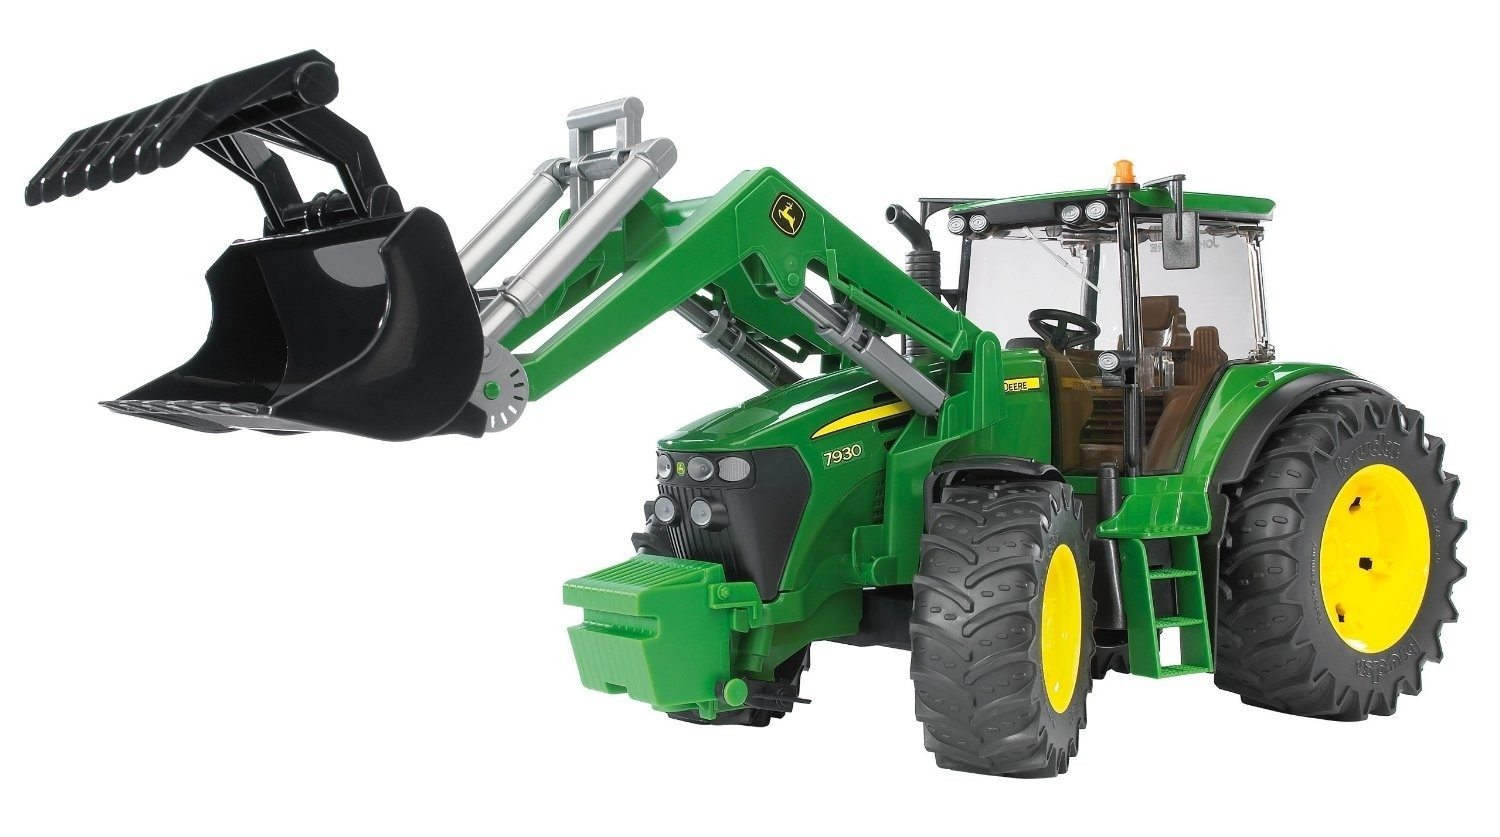 tracteur avec chargeur frontal john deere 7930 m. Black Bedroom Furniture Sets. Home Design Ideas